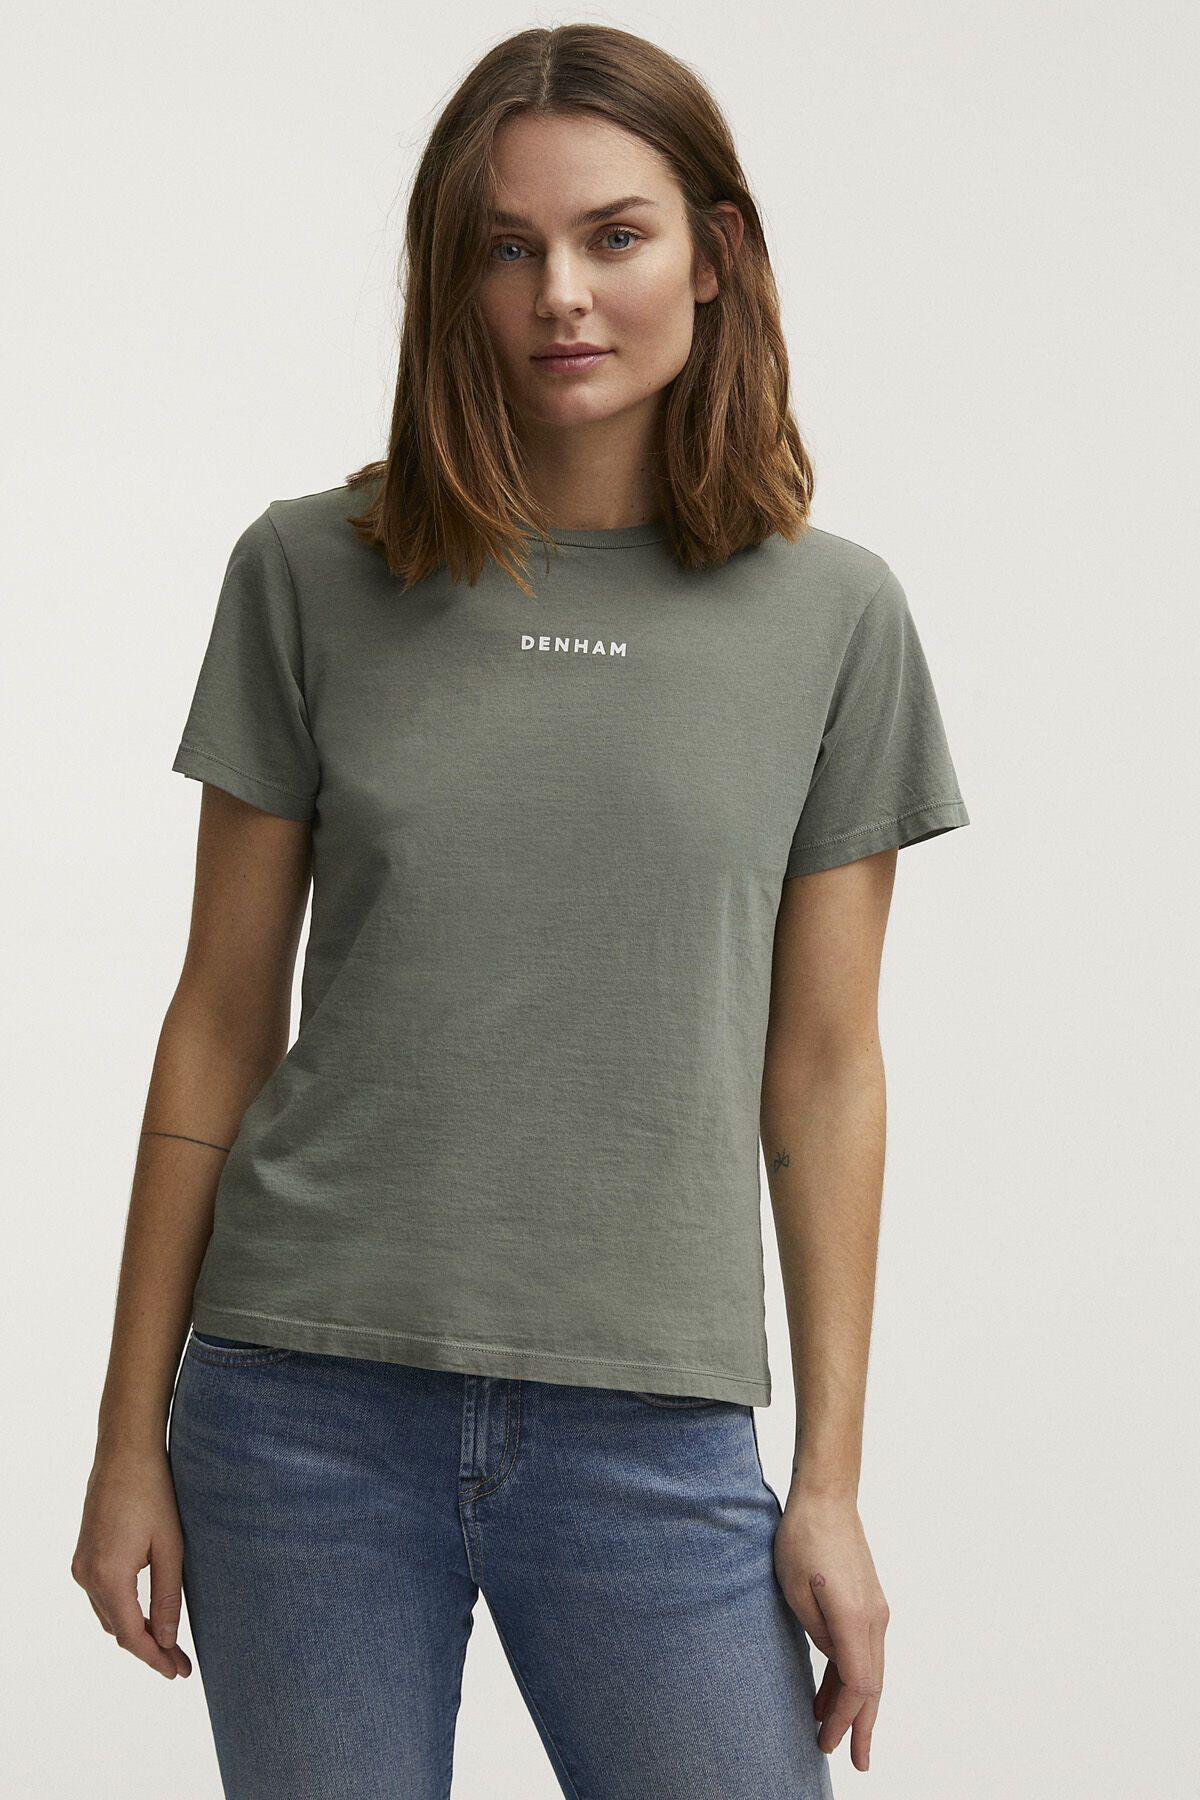 CAMELLIA GRAPHIC TEE Premium Cotton Jersey - Regular Fit